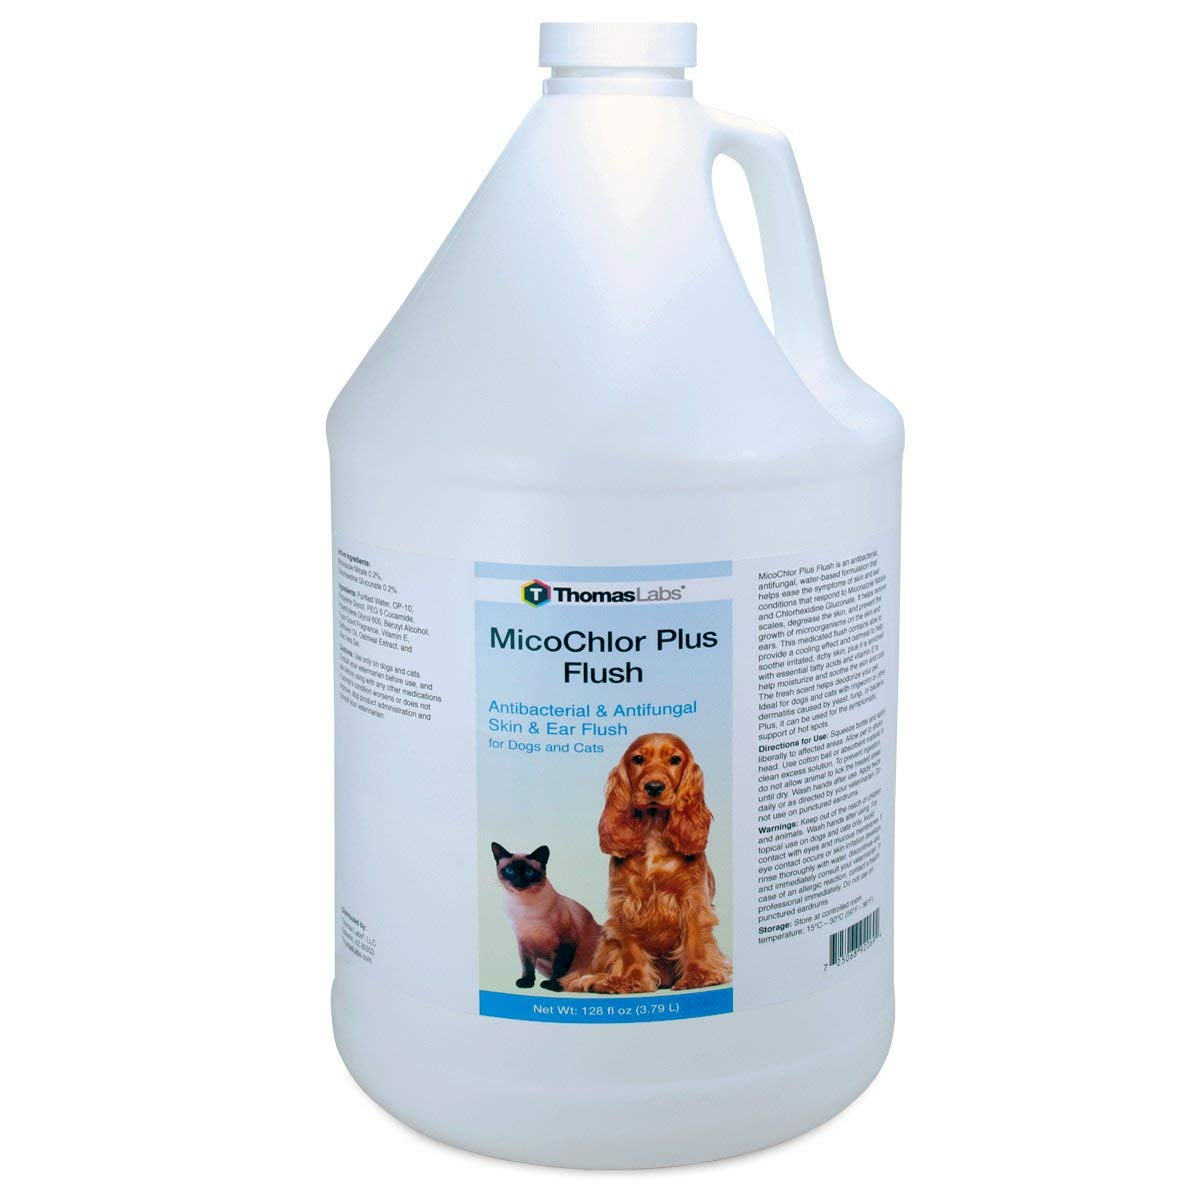 Thomas Labs MicoChlor Medicated Pet Shampoo 1 Gallon - Veterinary-Strength, Antibacterial, and Antifungal Shampoo for Dogs, Cats, and Horses